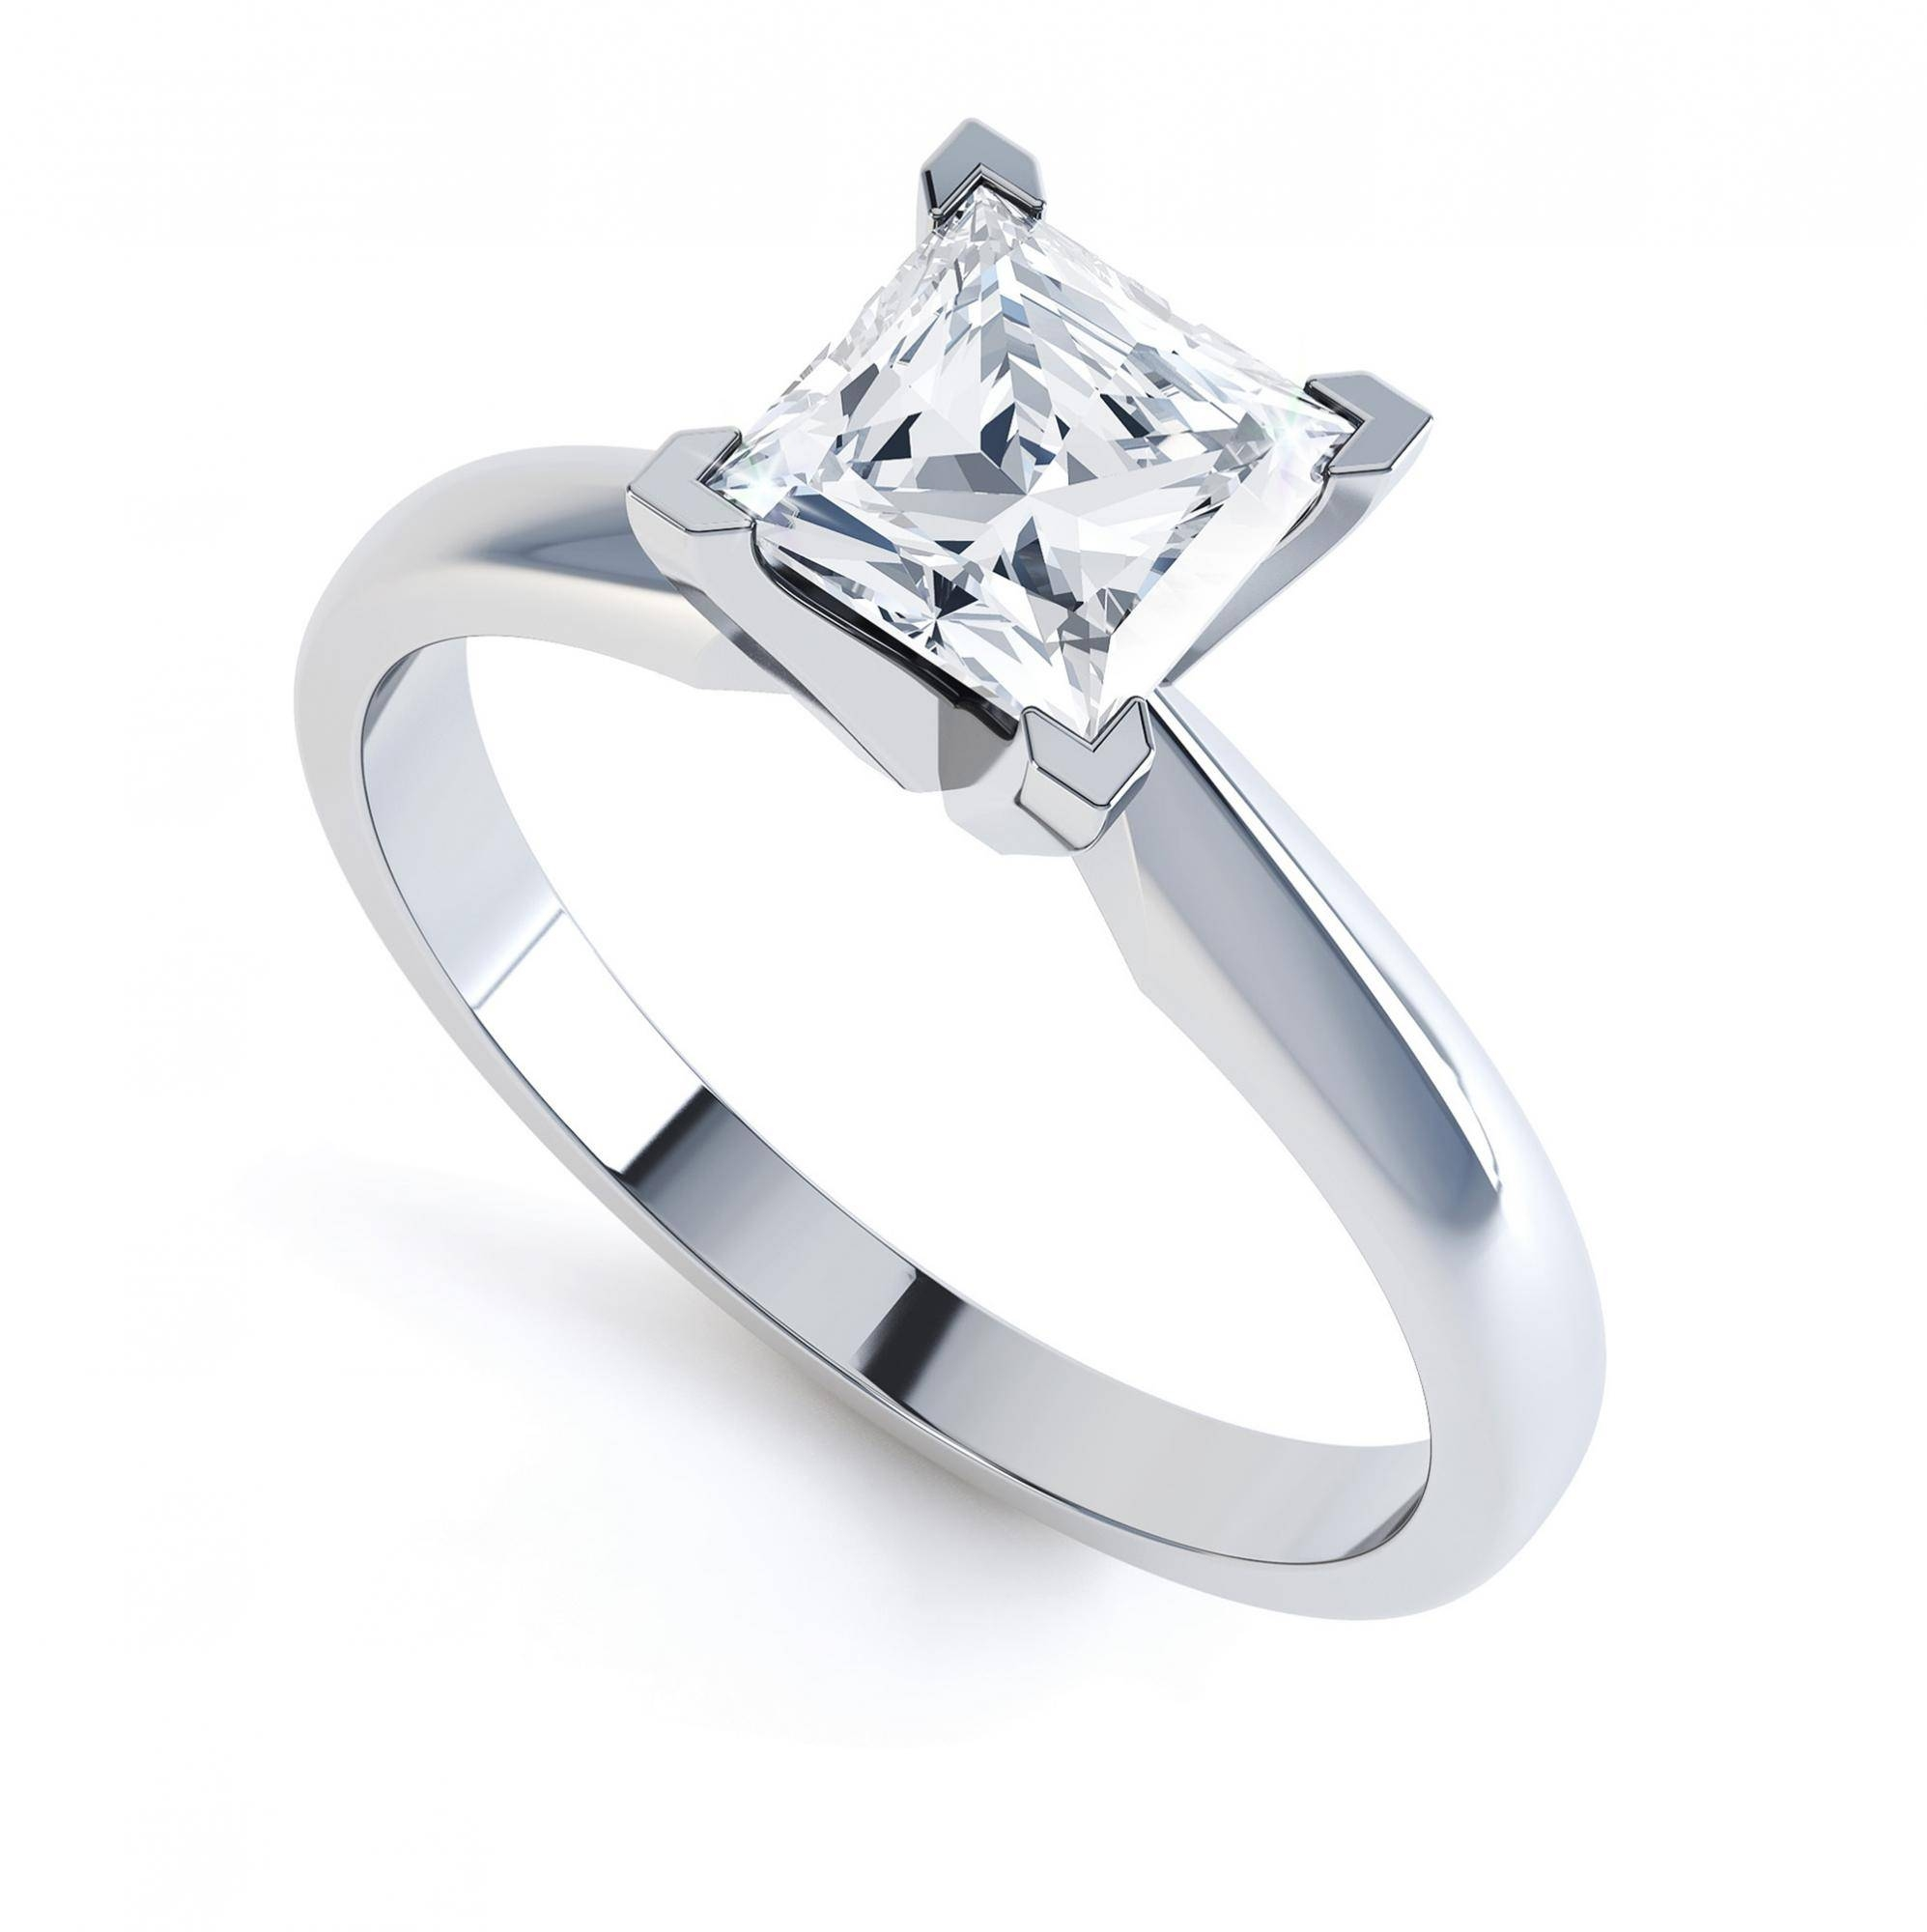 Modern 4 Claw Princess Solitaire Engagement Ring Regarding Princess Shaped Engagement Rings (View 7 of 15)